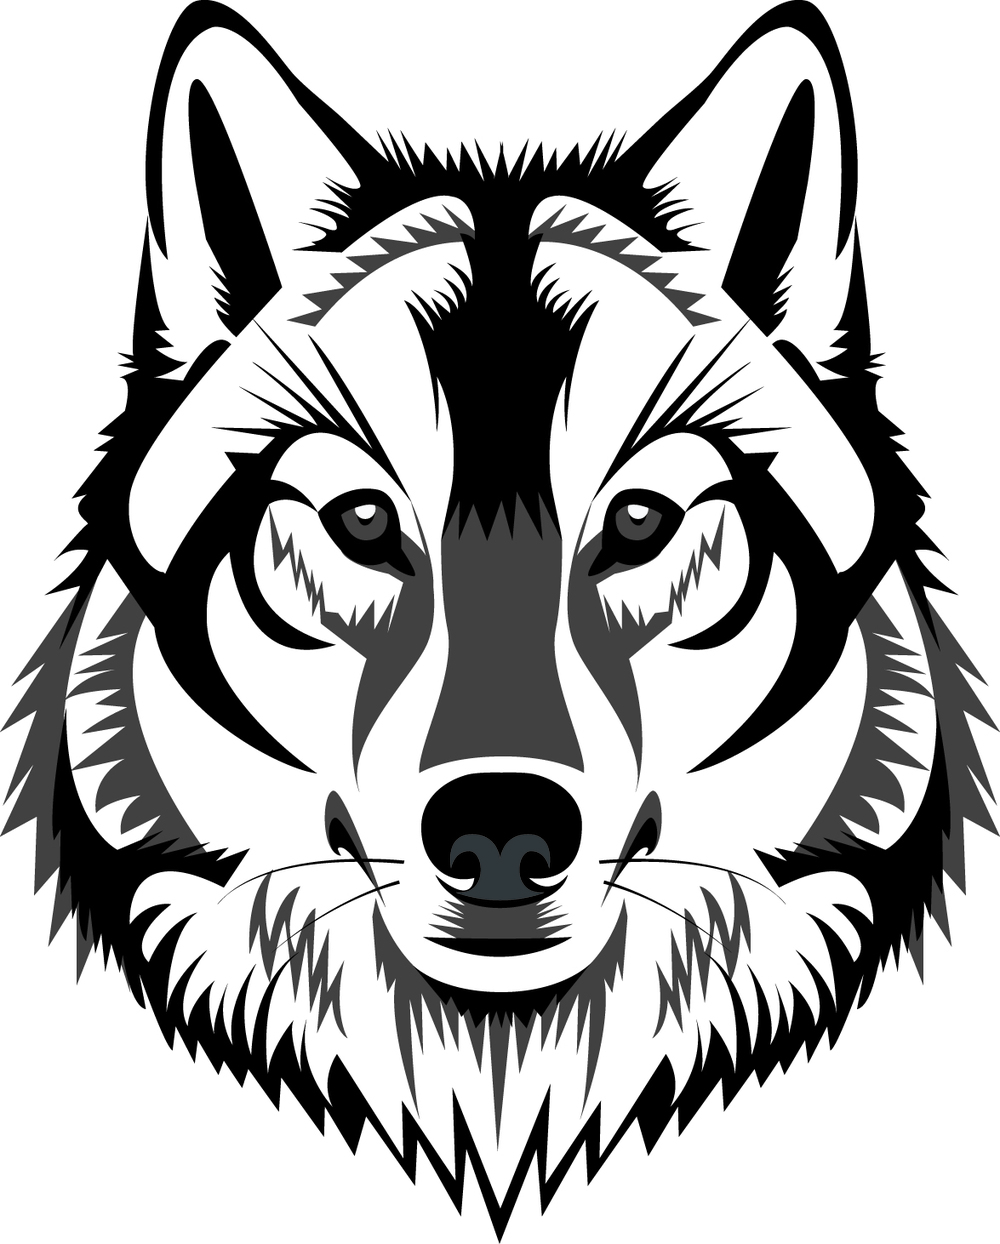 Jpg To Line Drawing : Wolf head drawings clipart best